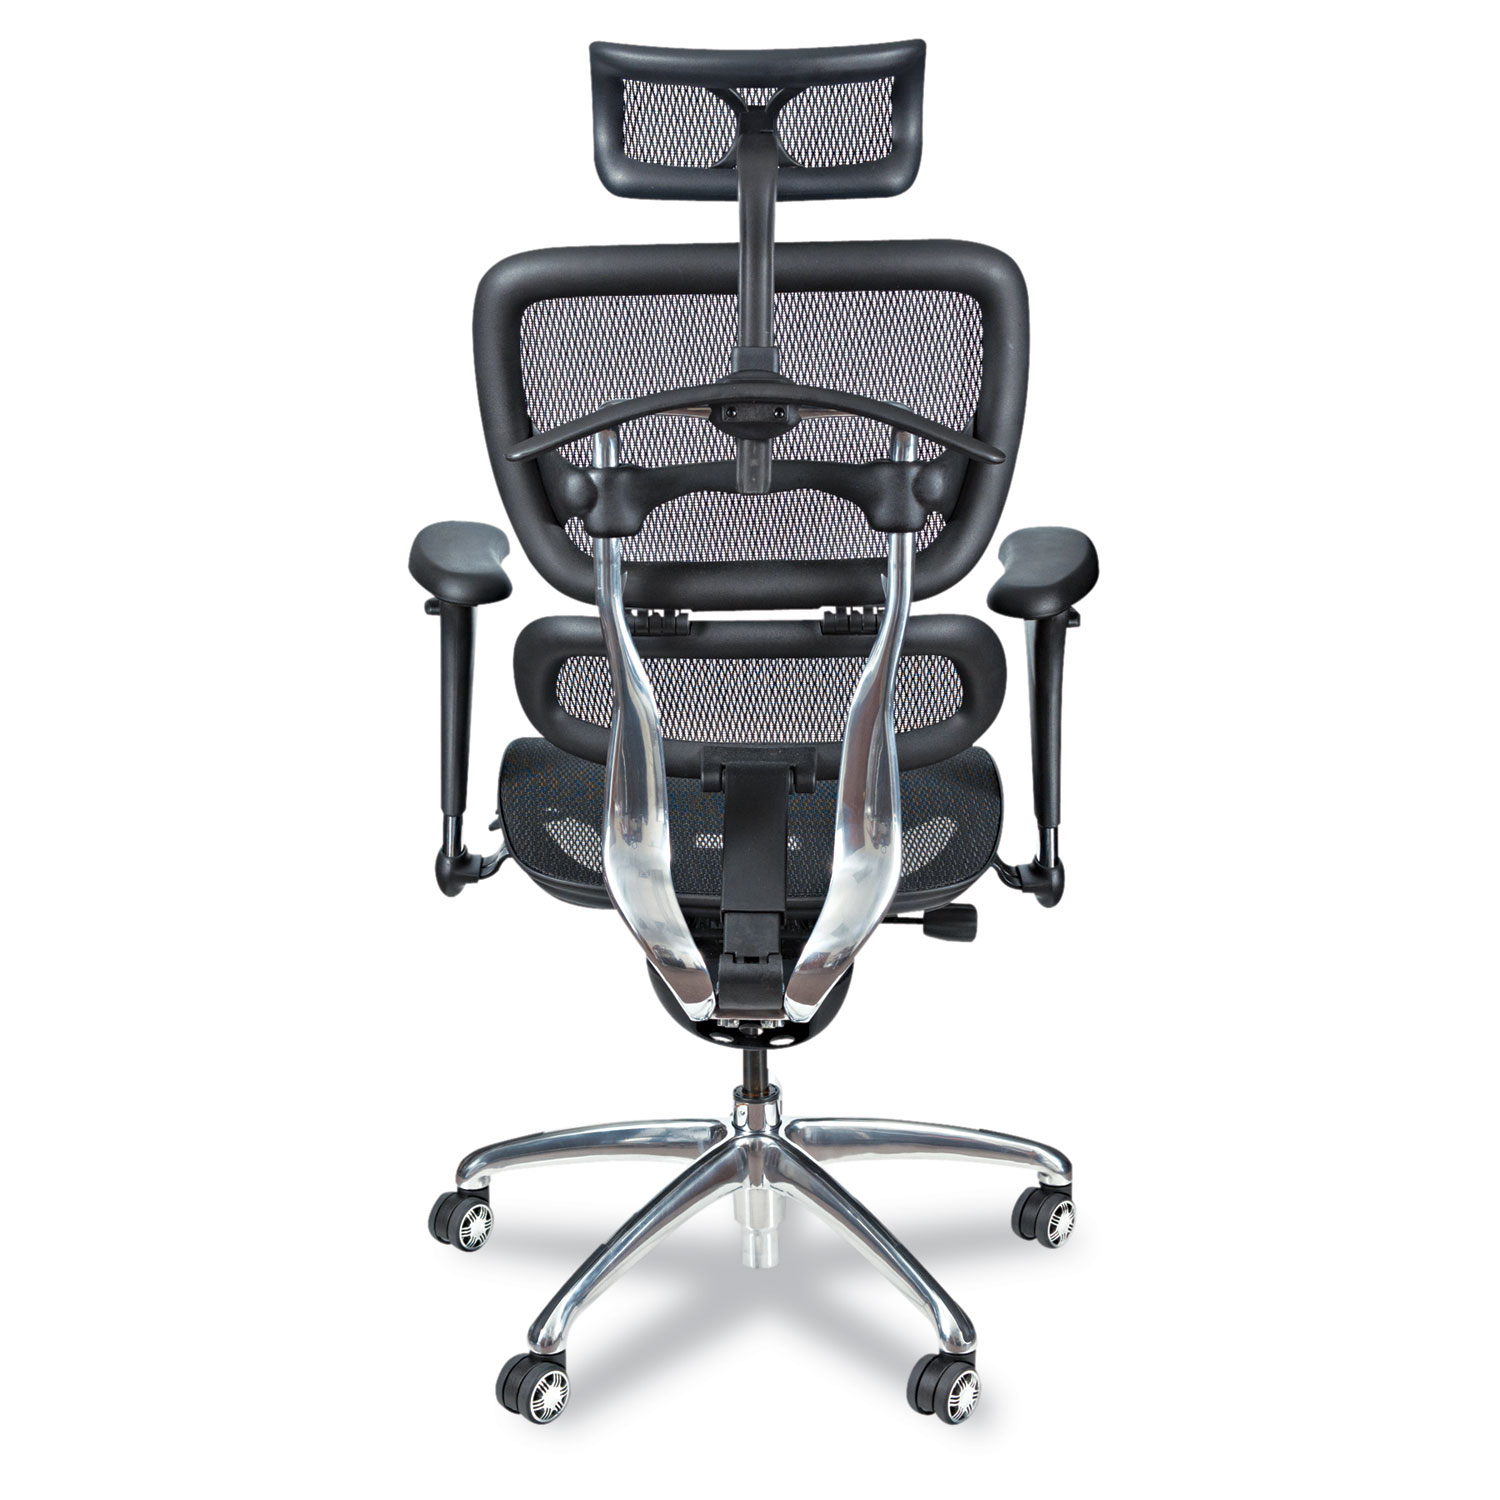 balt posture perfect chair how to make a cover without sewing the best and most affordable ergonomic office chairs buy